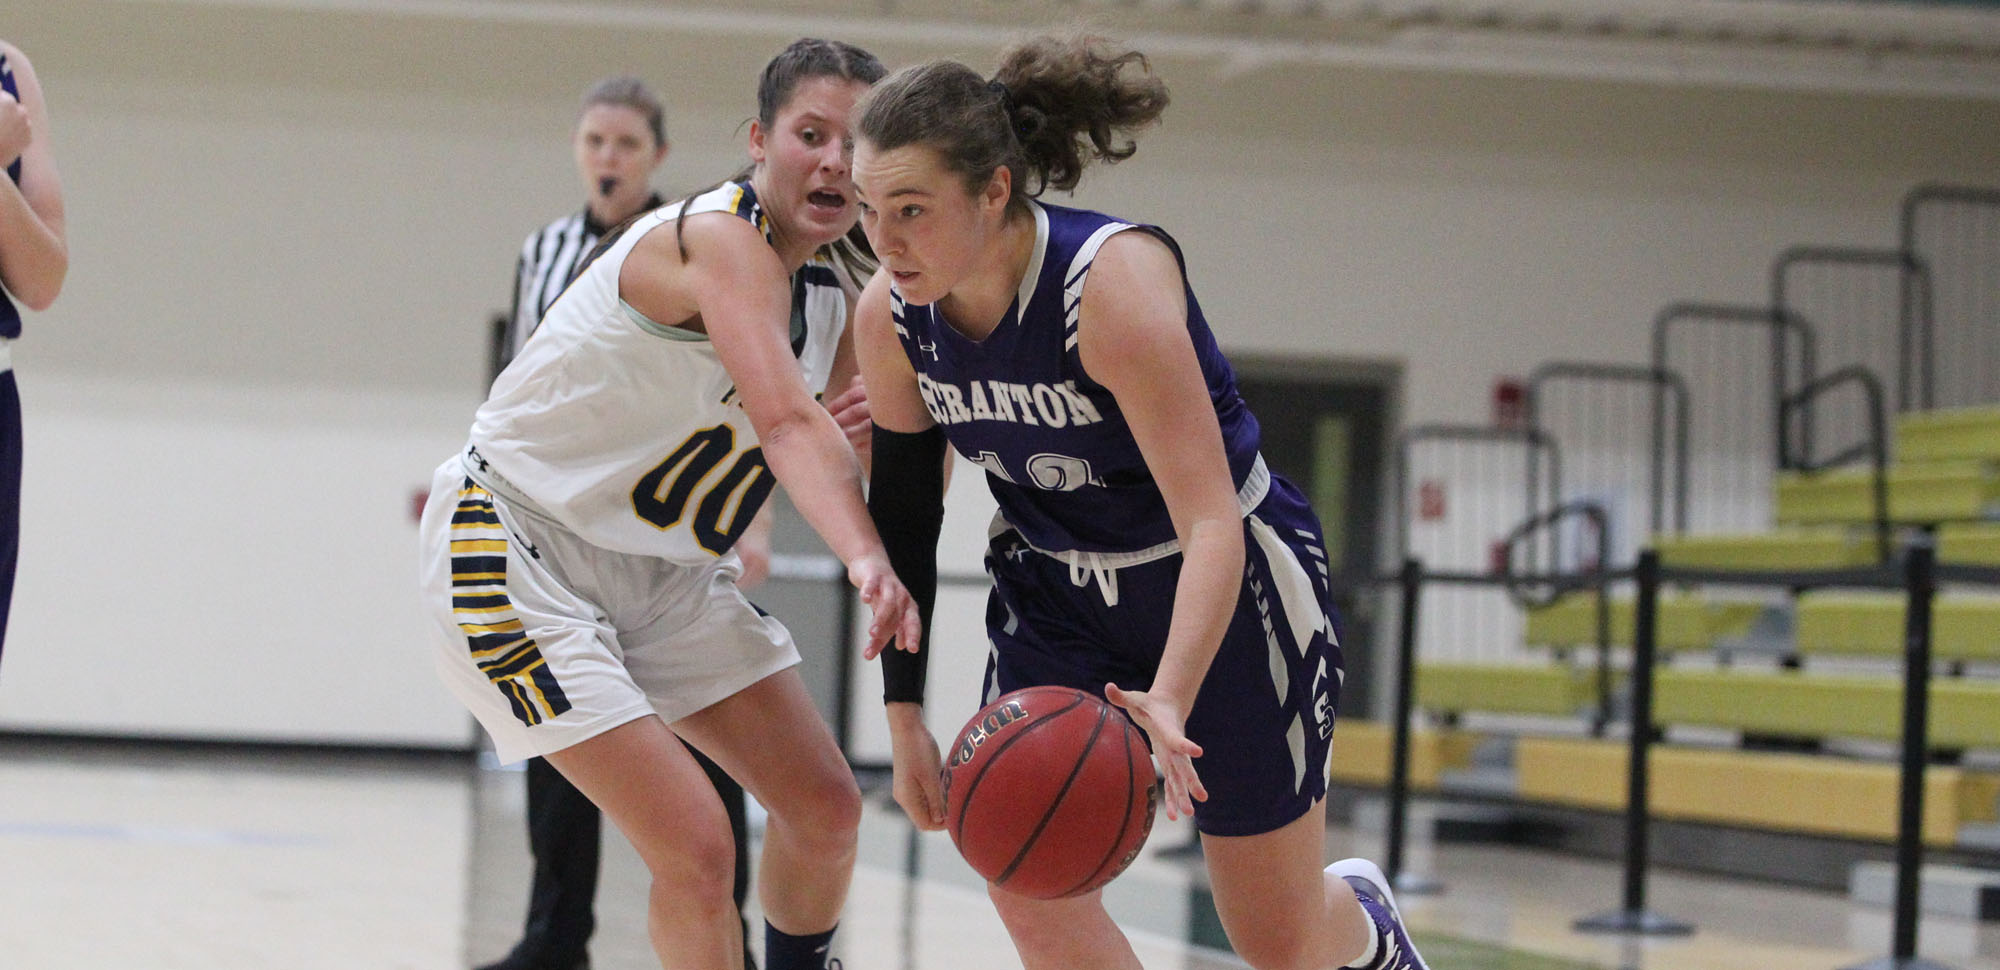 For the second time in three games, senior Bridgette Mann scored over 20 points, finishing with 26 to lead the Lady Royals to a comfortable 66-53 win at Elizabethtown on Saturday.